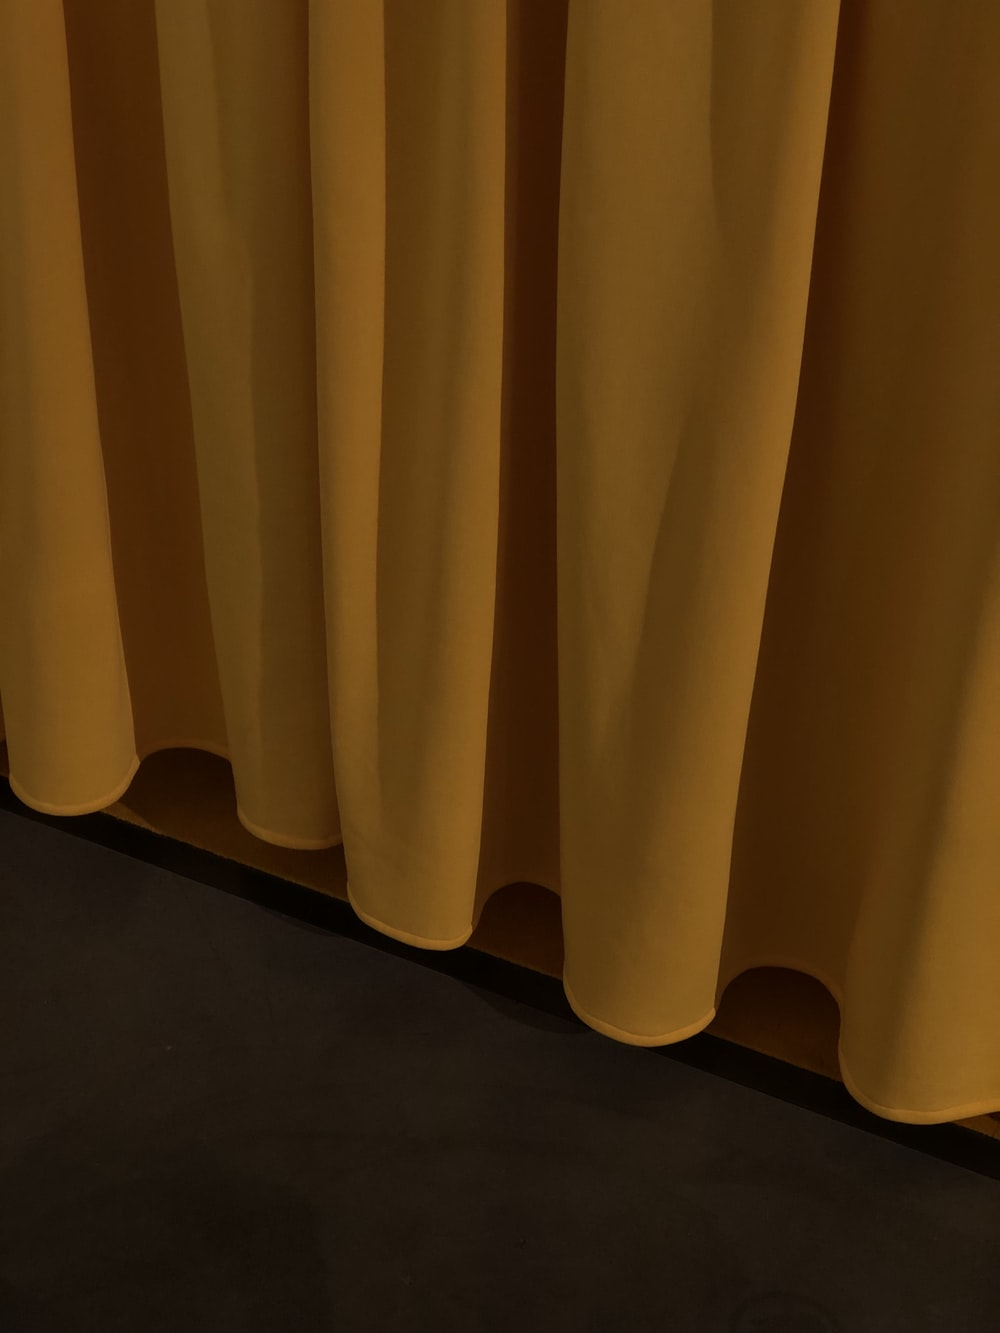 yellow curtain on brown wooden floor